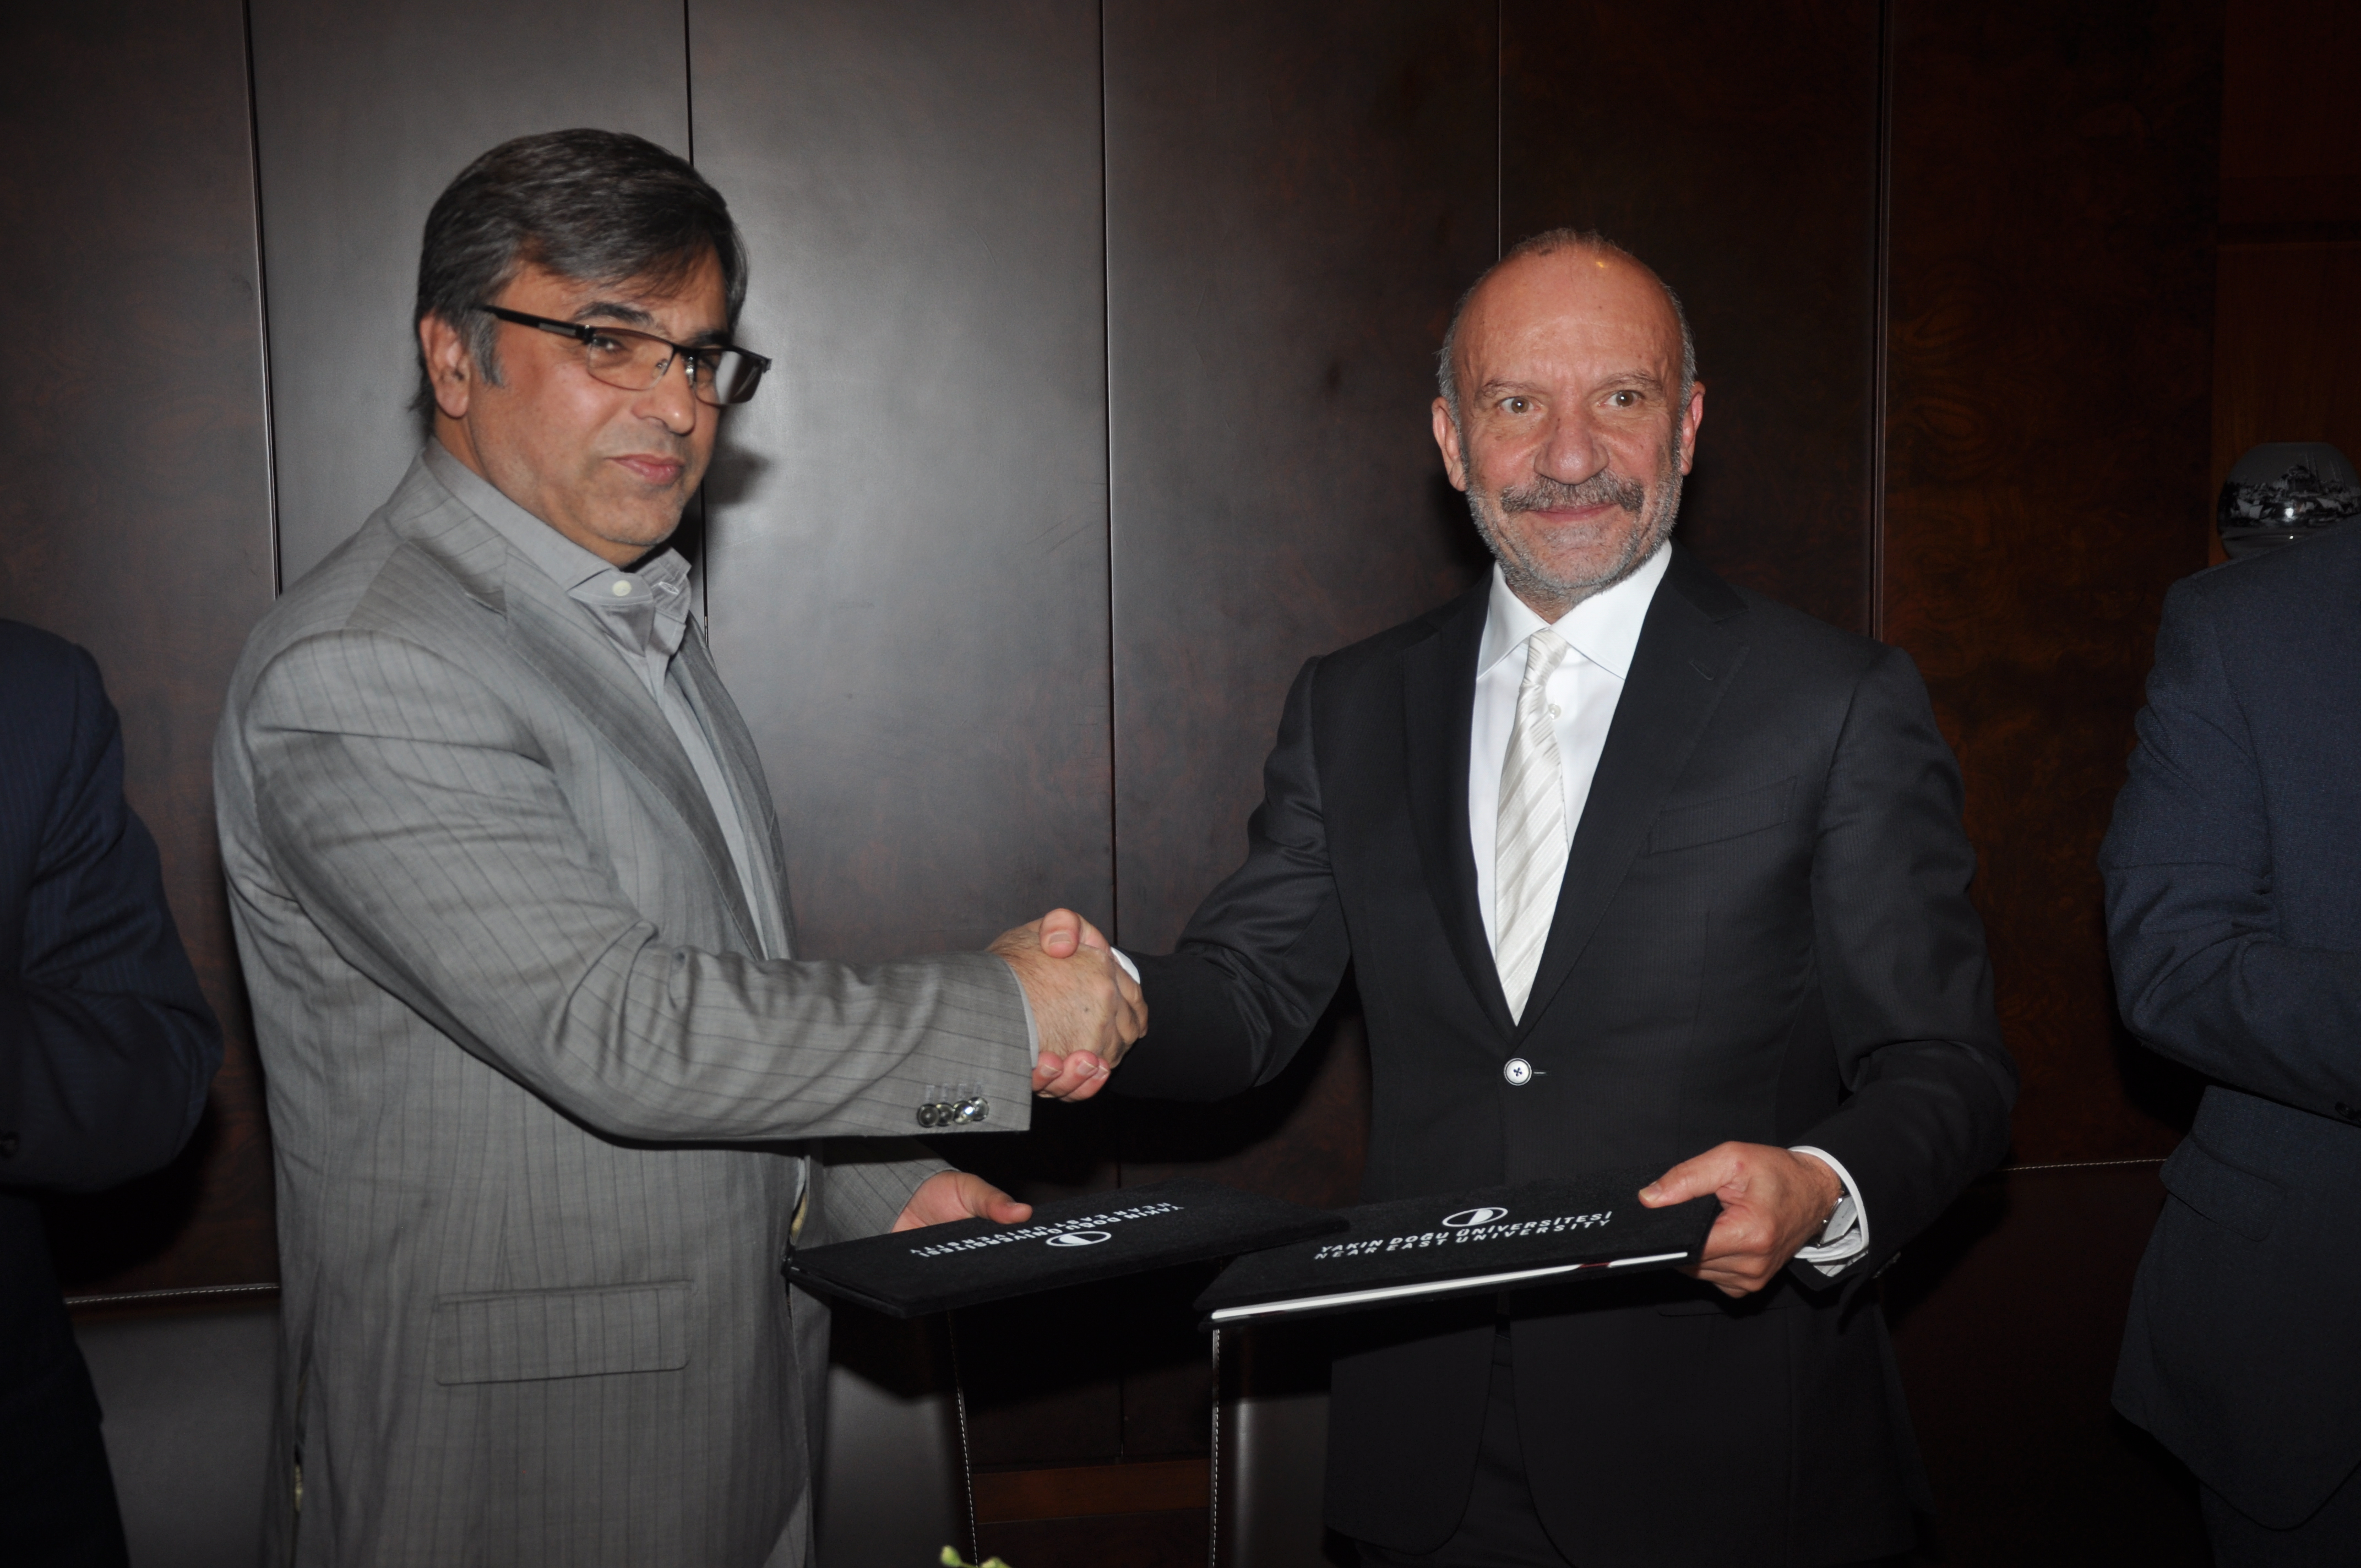 Agreement on Conducting Joint Degree Program Between NEU and Alborz University of Medical Sciences